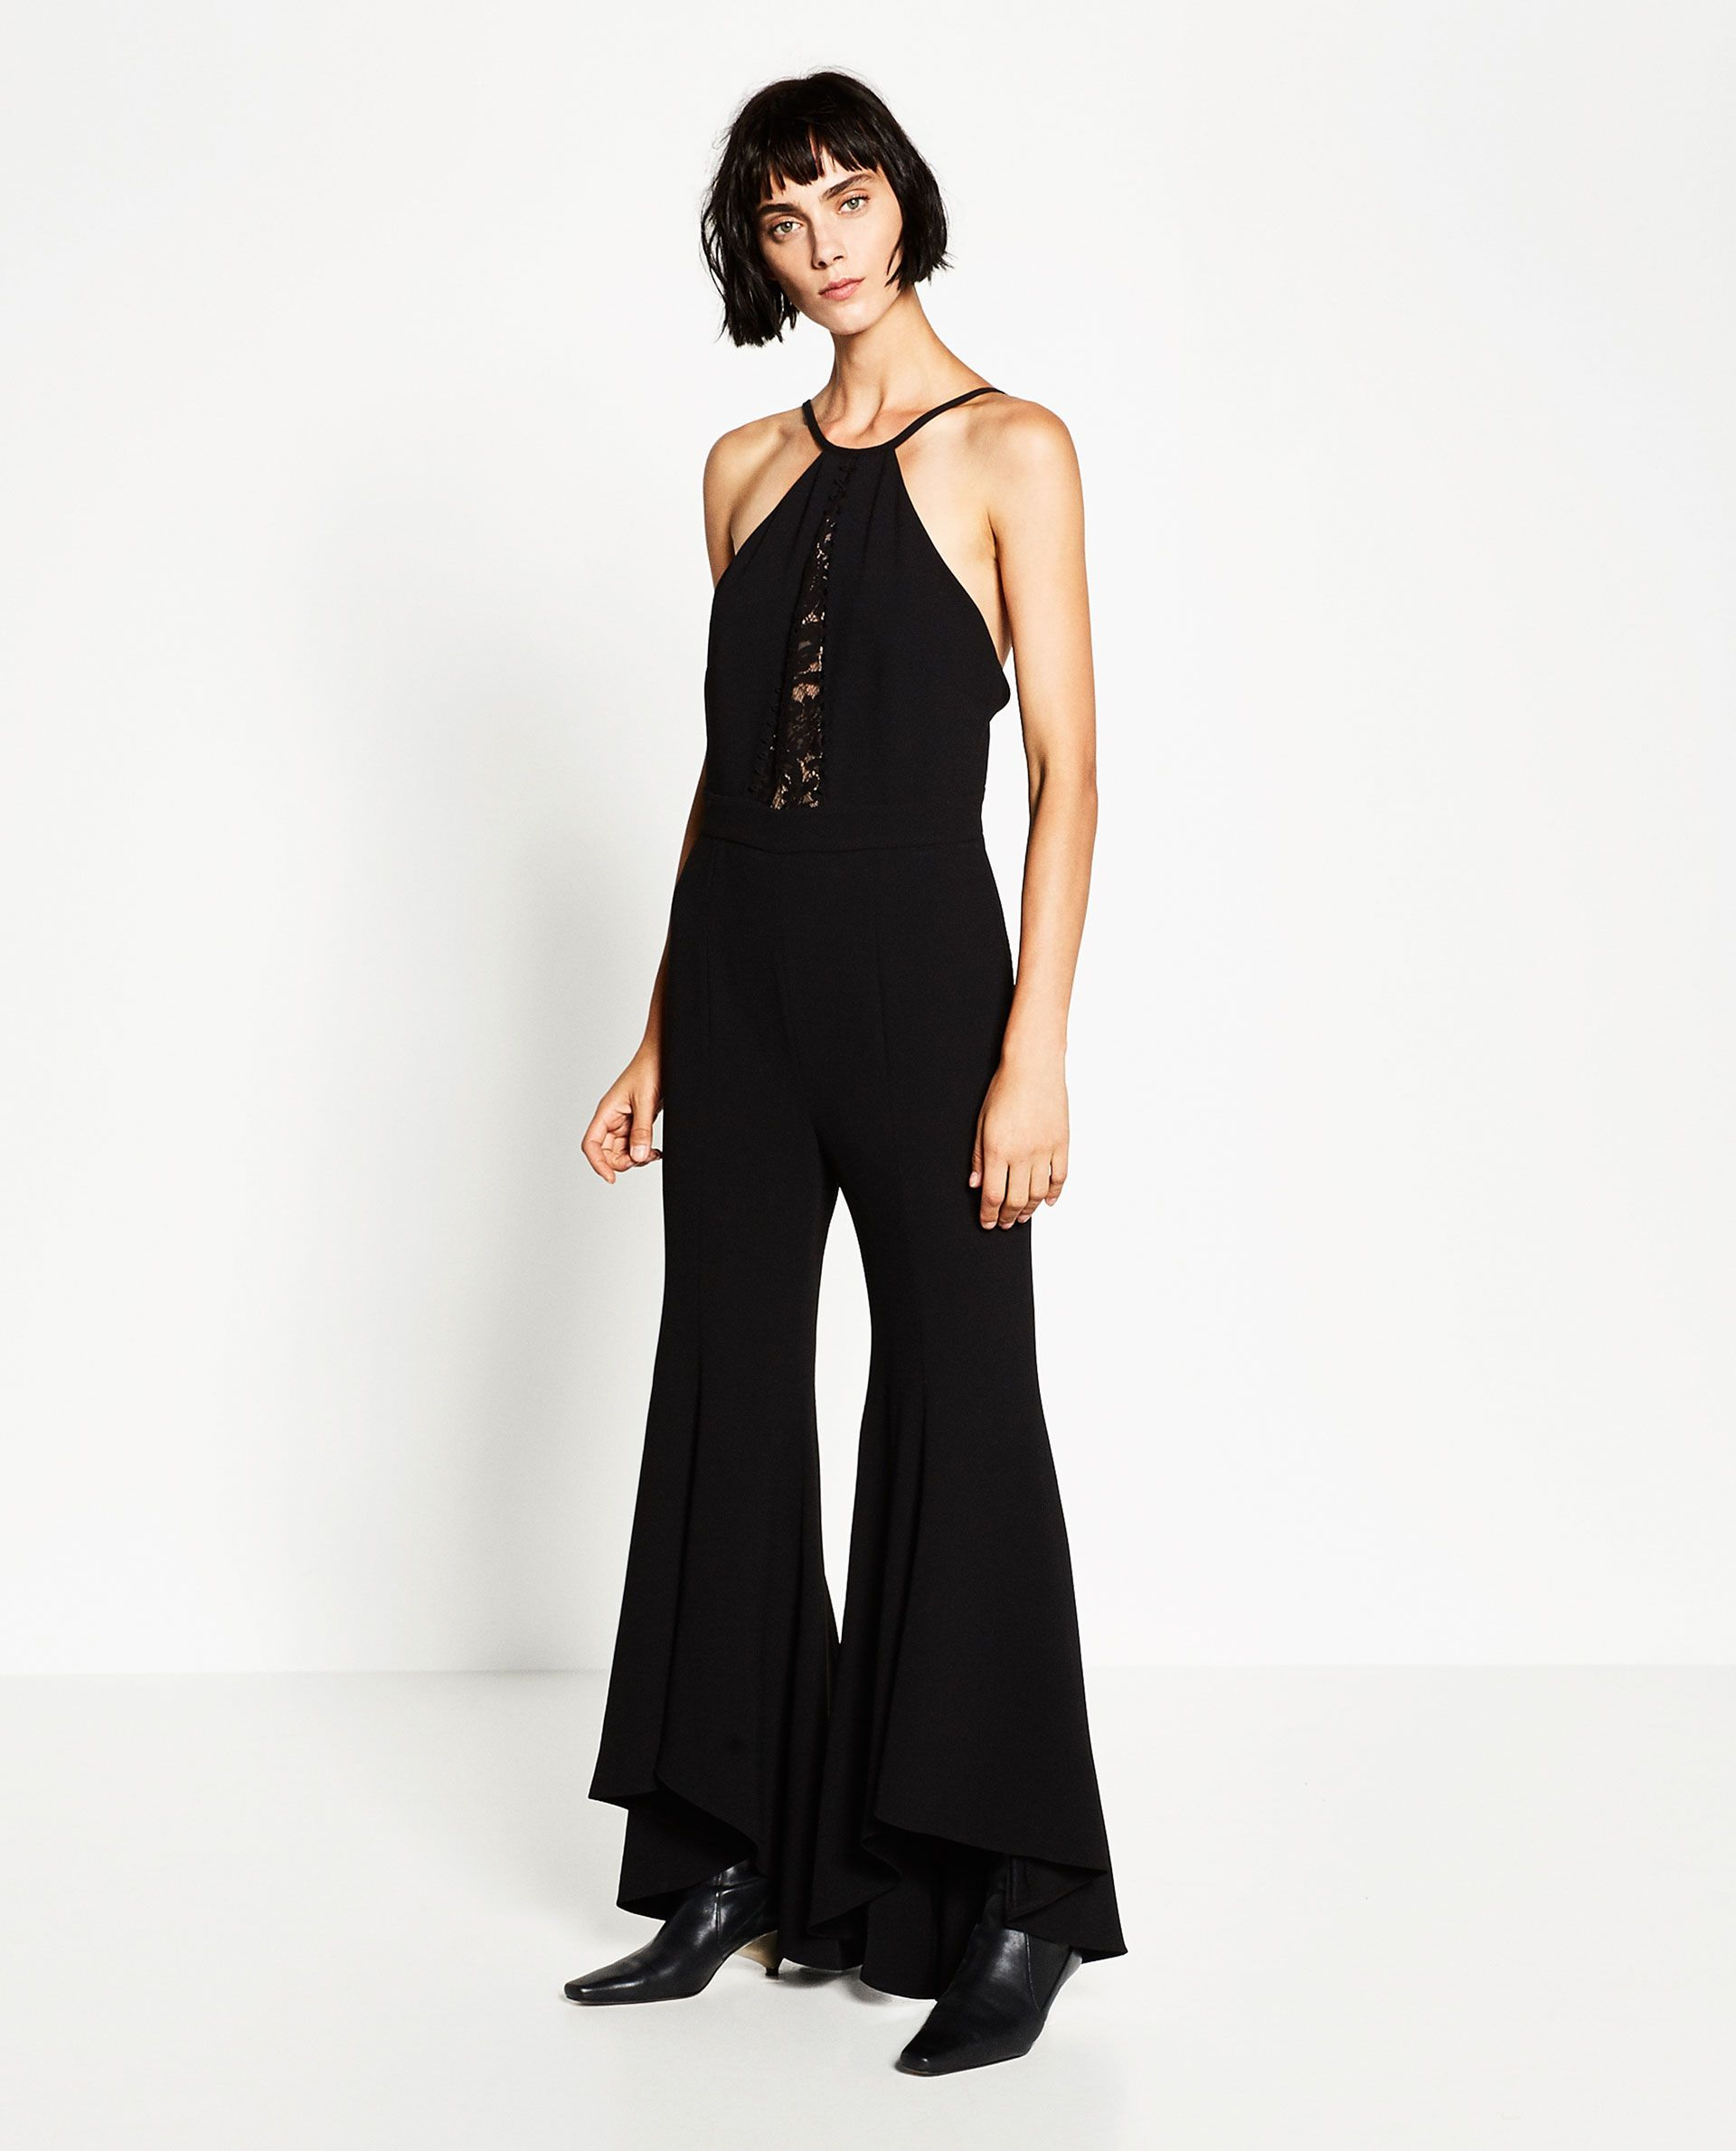 bdd19a76e03 Zara s New Arrivals Will Get You Excited For Fall